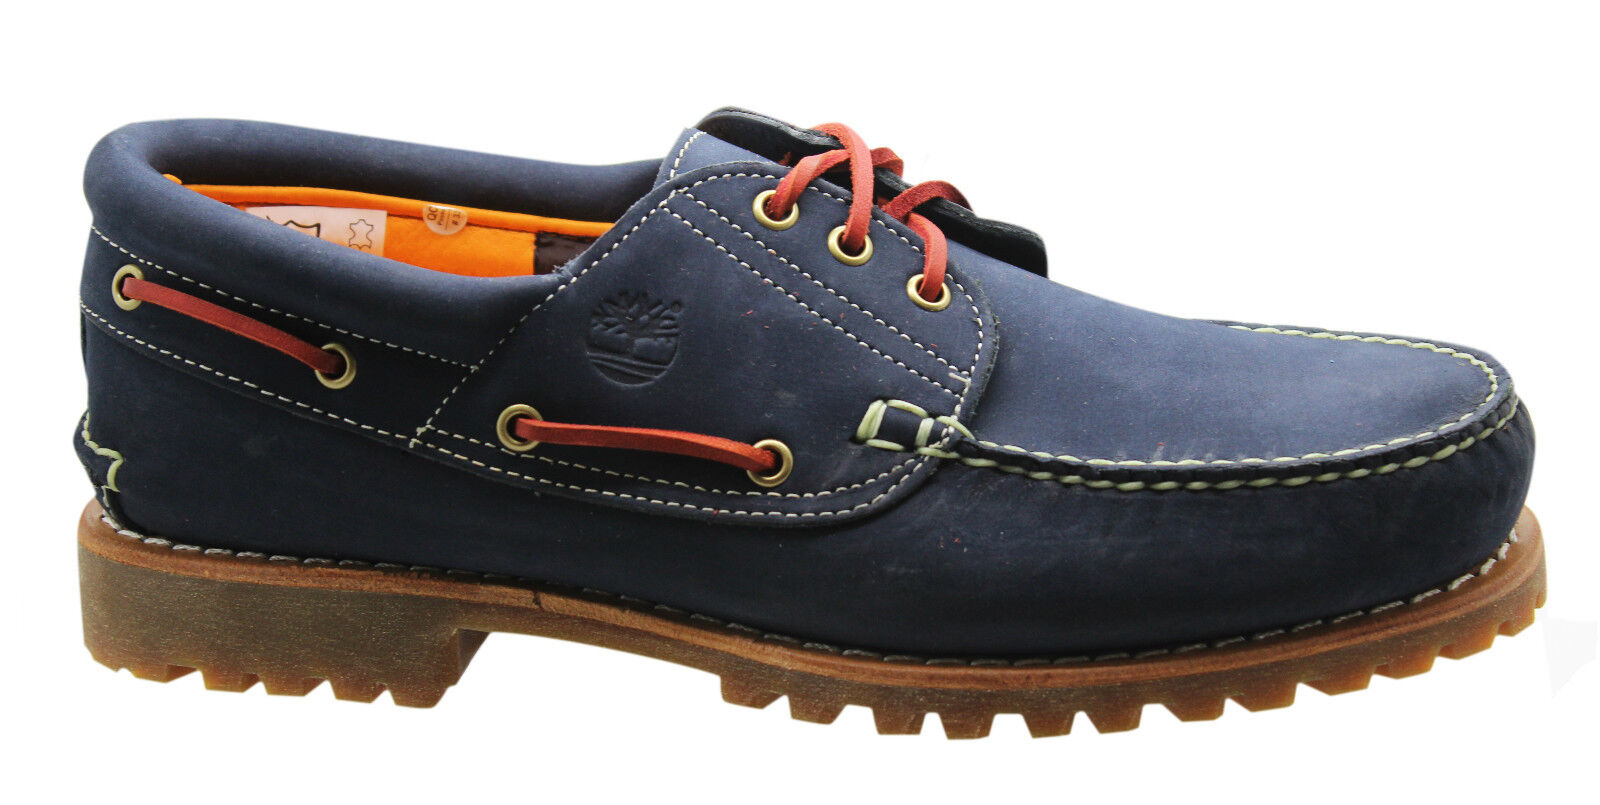 5411adaa5ecf Details about Timberland Authentic 3Eye Classic Lug Mens Boat Shoes Navy  Blue Nubuck 9753B D16